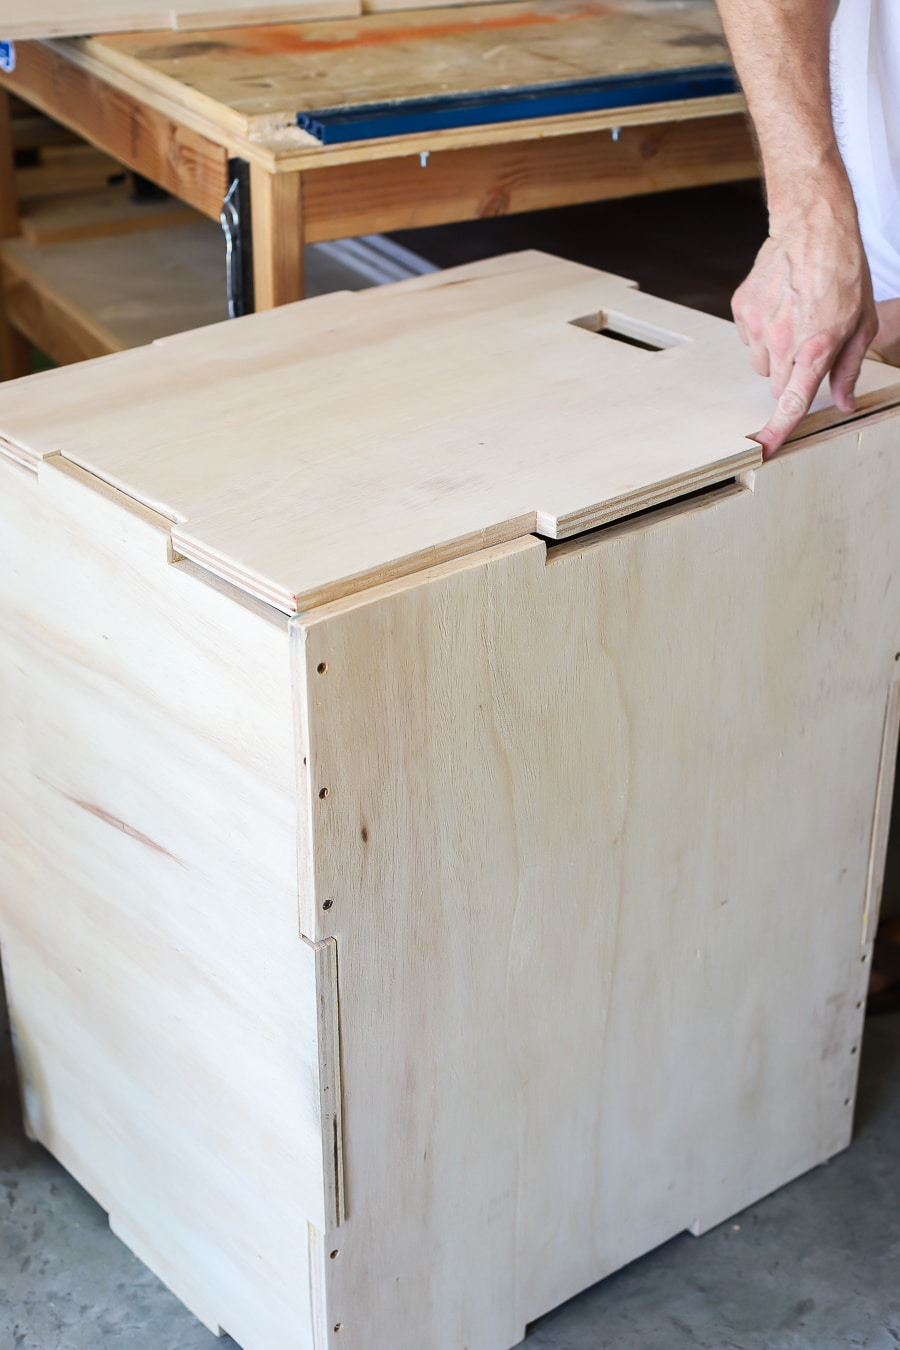 Build a DIY 3-in-1 Plyometric Box for Box Jump Exercises